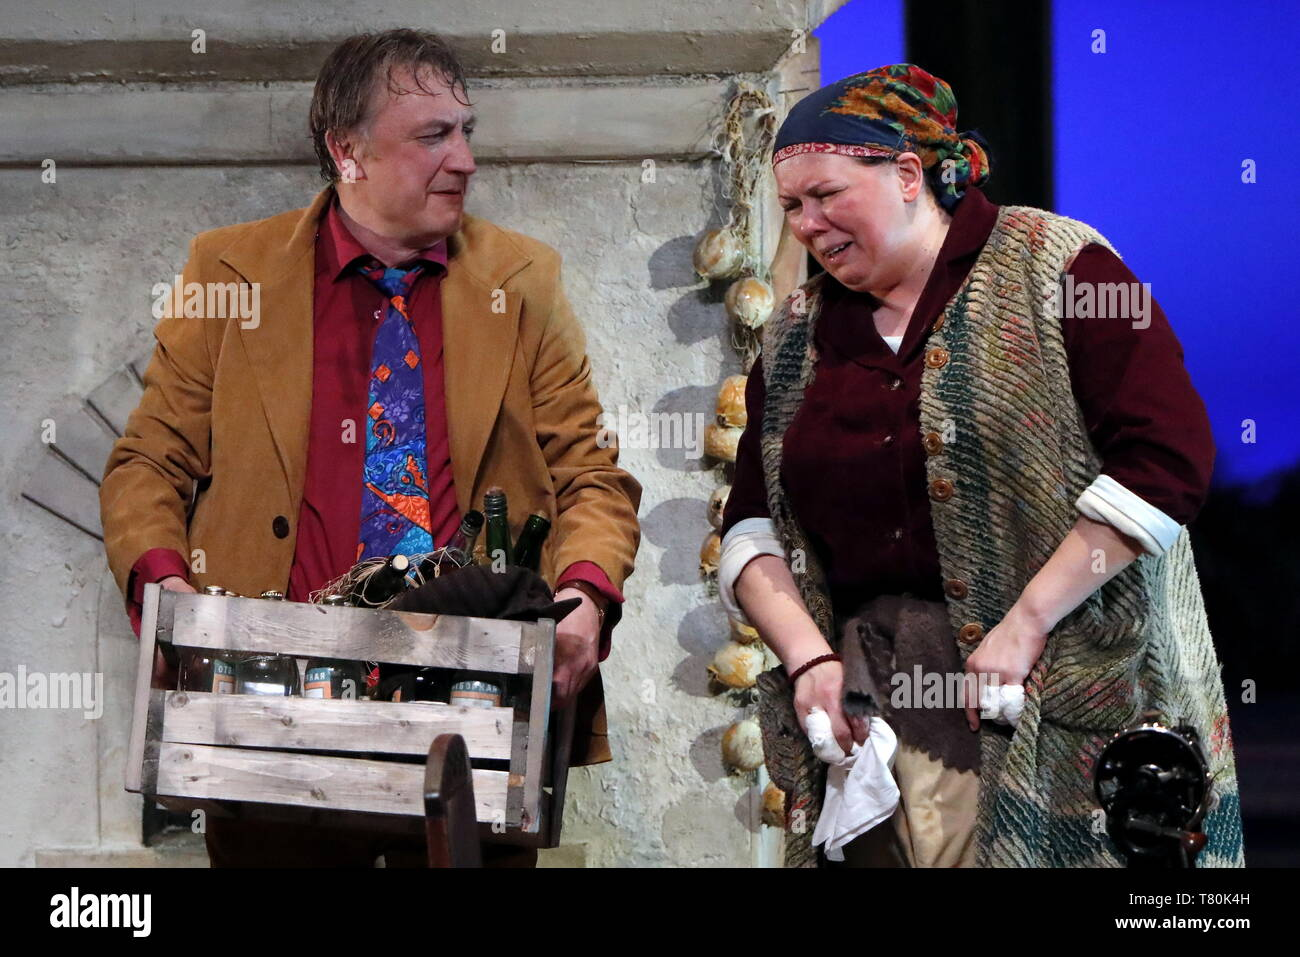 MOSCOW, RUSSIA - MAY 8, 2019: Andrei Zaikov as Ilya (L) and Natalya Morgunova as Varvara in a scene during the premiere of The Last Term, a stage adaptation of the namesake novel by writer Valentin Rasputin, directed by Sergei Puskepalis, at the Gorky Moscow Art Theatre (MKhAT). Sergei Karpukhin/TASS - Stock Image